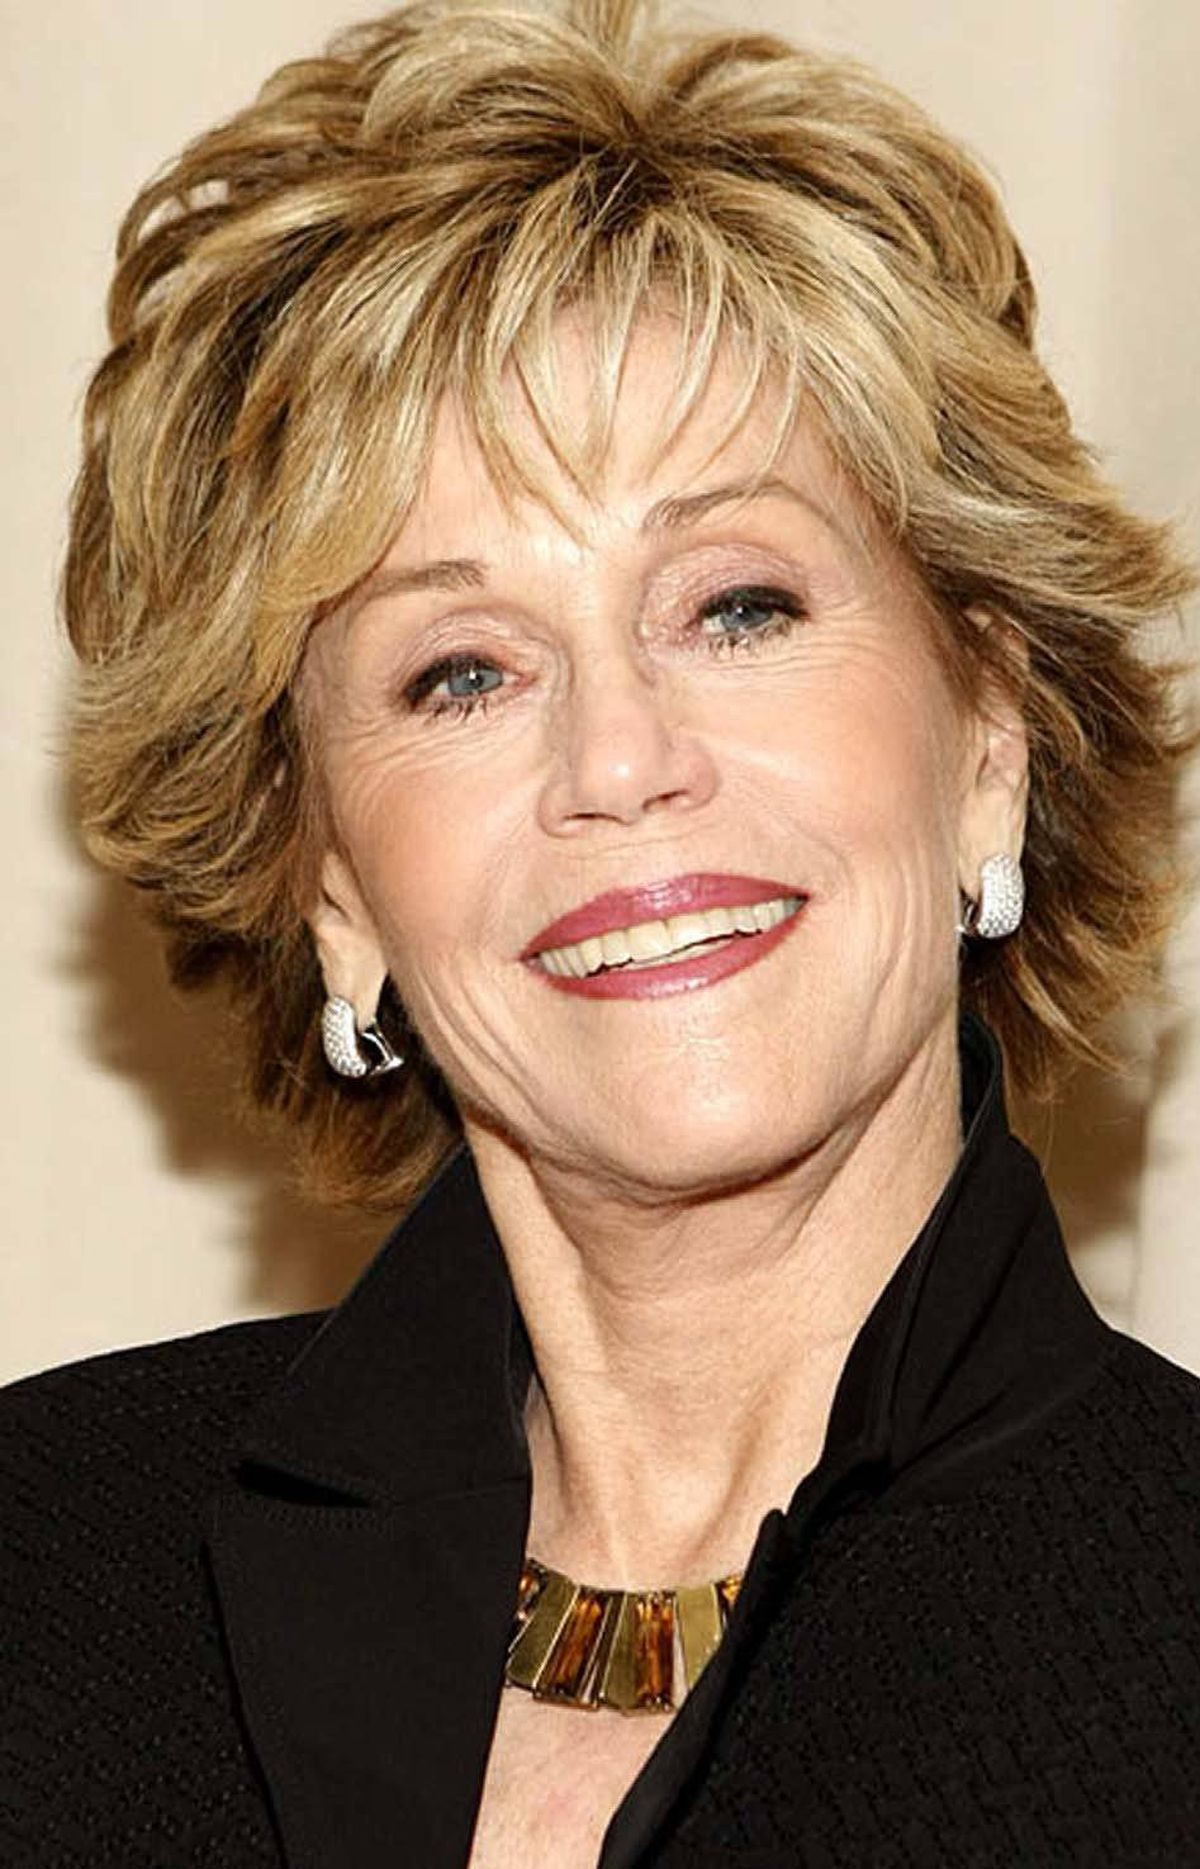 BIOGRAPHY Private Screenings: Jane Fonda TCM, 7 p.m. ET; 4 p.m. PT Happy birthday to Jane Fonda, who turns 74 today and still holds the unique distinction of being a celebrity triple threat. Beyond her longstanding reputation as a political activist, she also kick-started the fitness revolution in the eighties with her best-selling workout videos. Along the way, Fonda also won two Academy Awards for acting. In this in-depth interview with TCM host Robert Osborne, she discusses the challenges of growing up the daughter of movie icon Henry Fonda and the film roles that she wants to be remembered by.